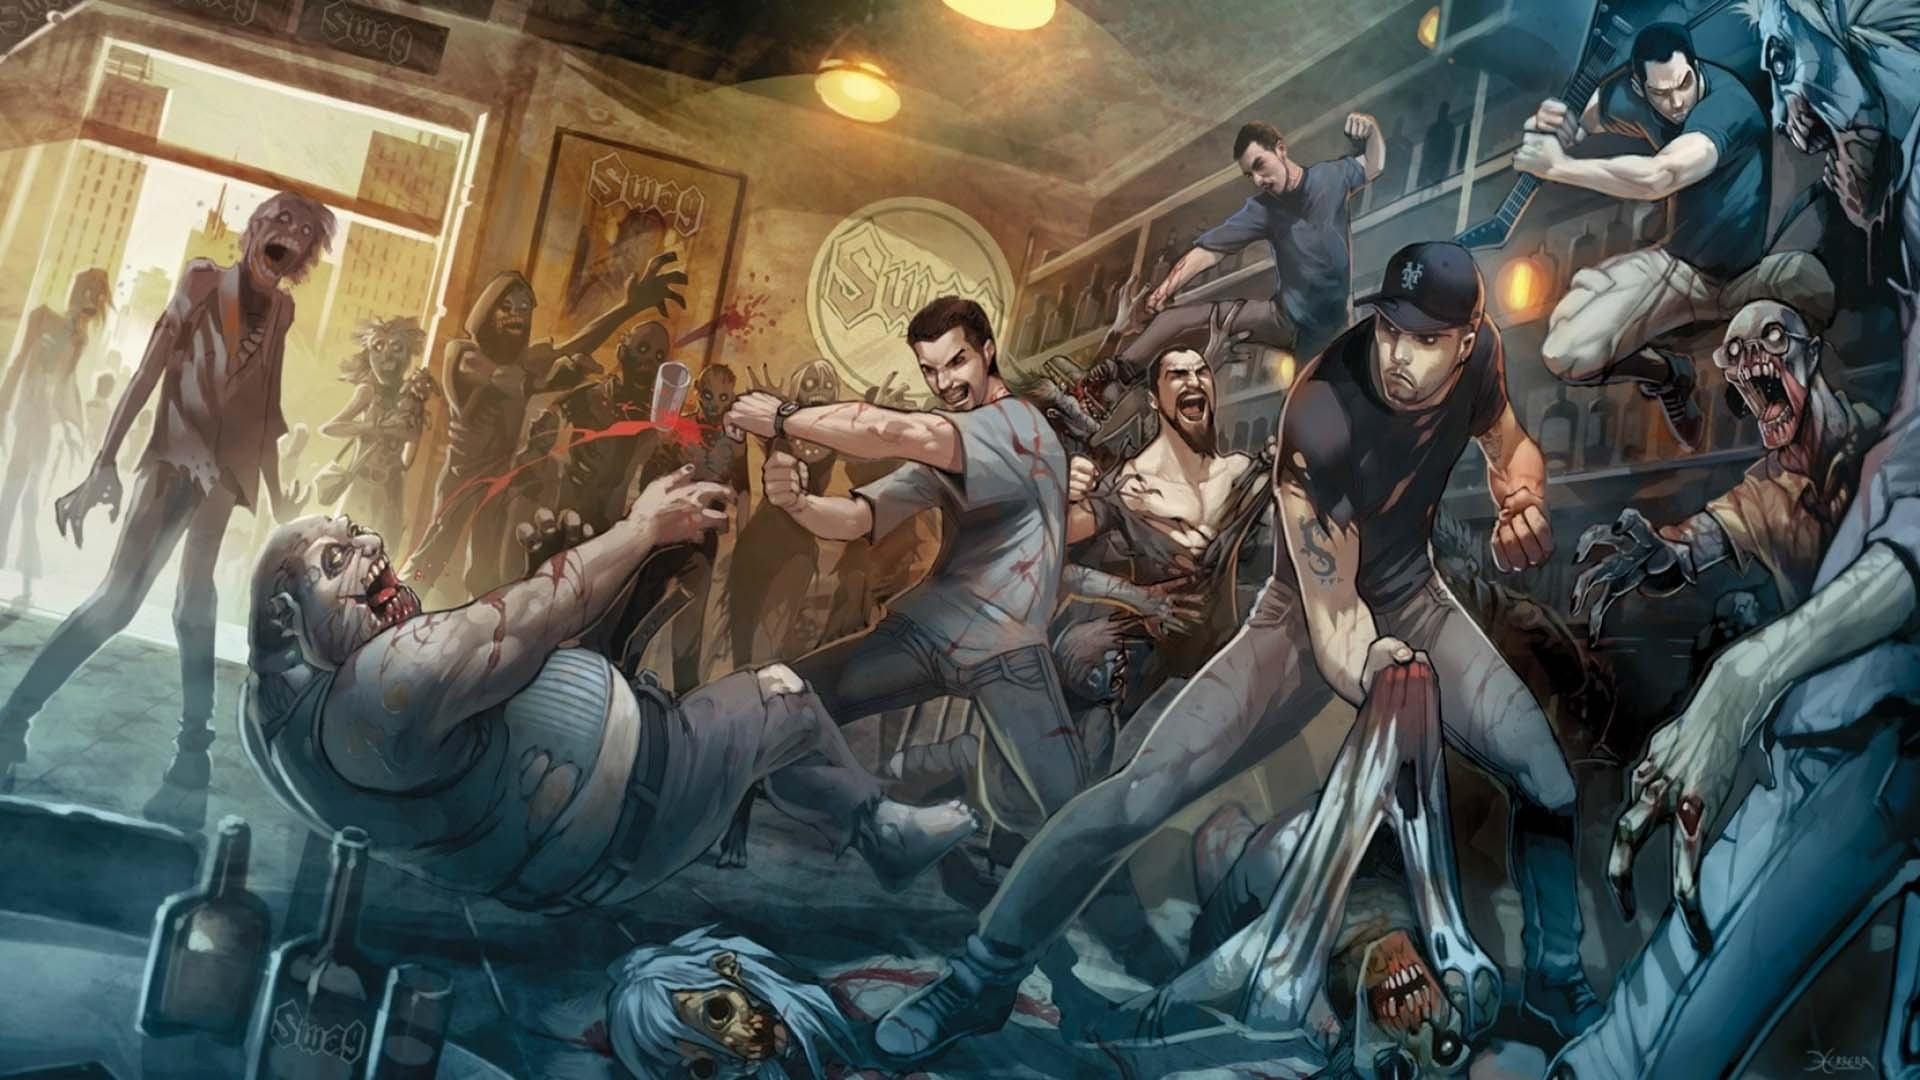 Post-Apocalyptic-Wallpapers-April-2014-12-Zombies01.jpg